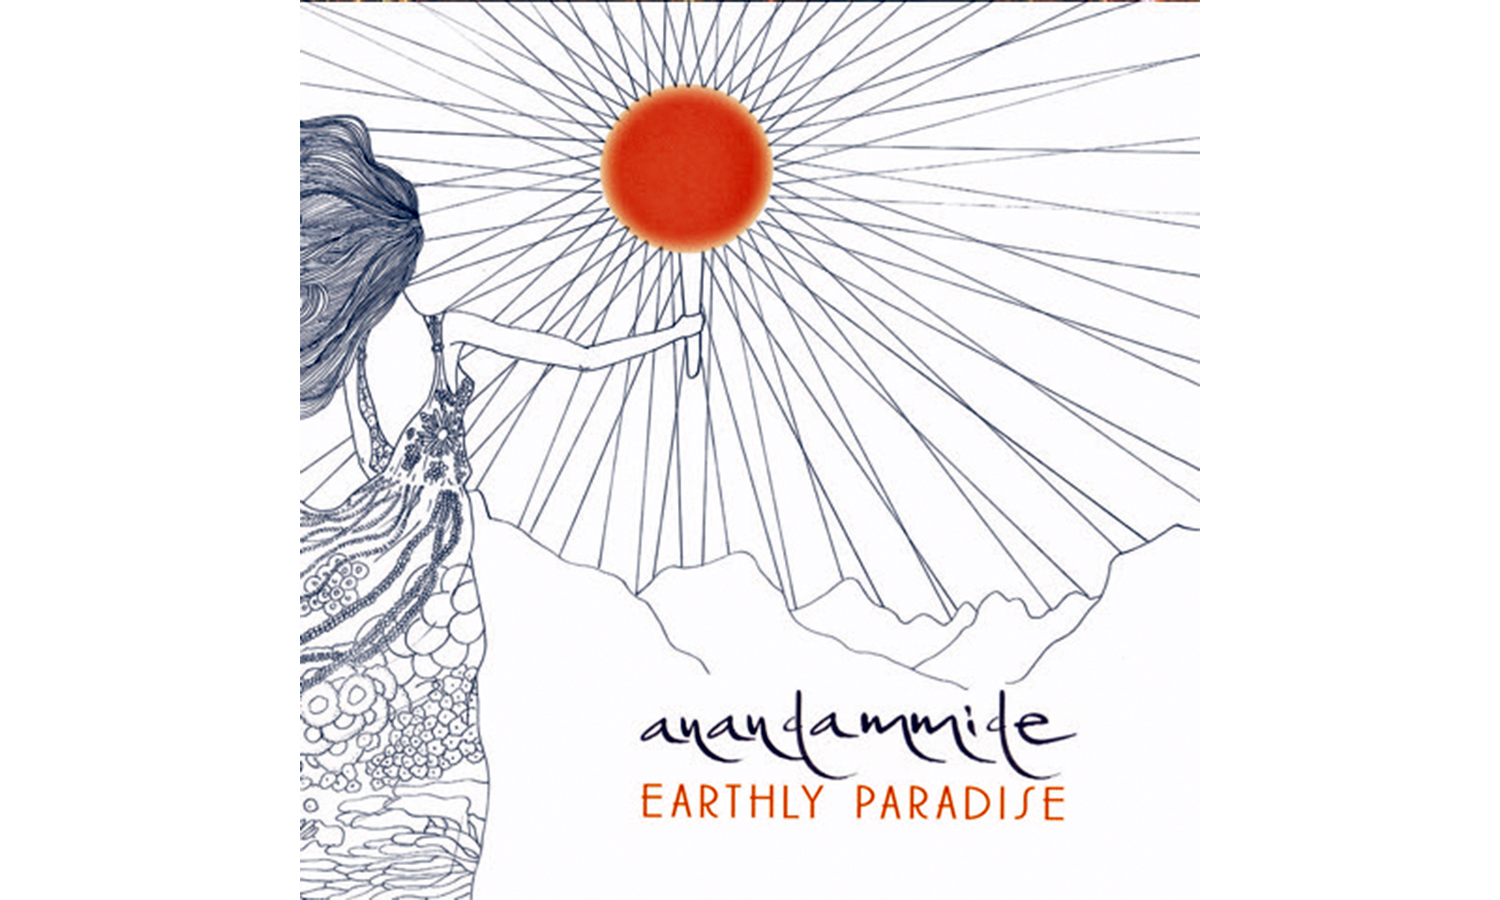 Anandammide presenta l'album Earthly Paradise